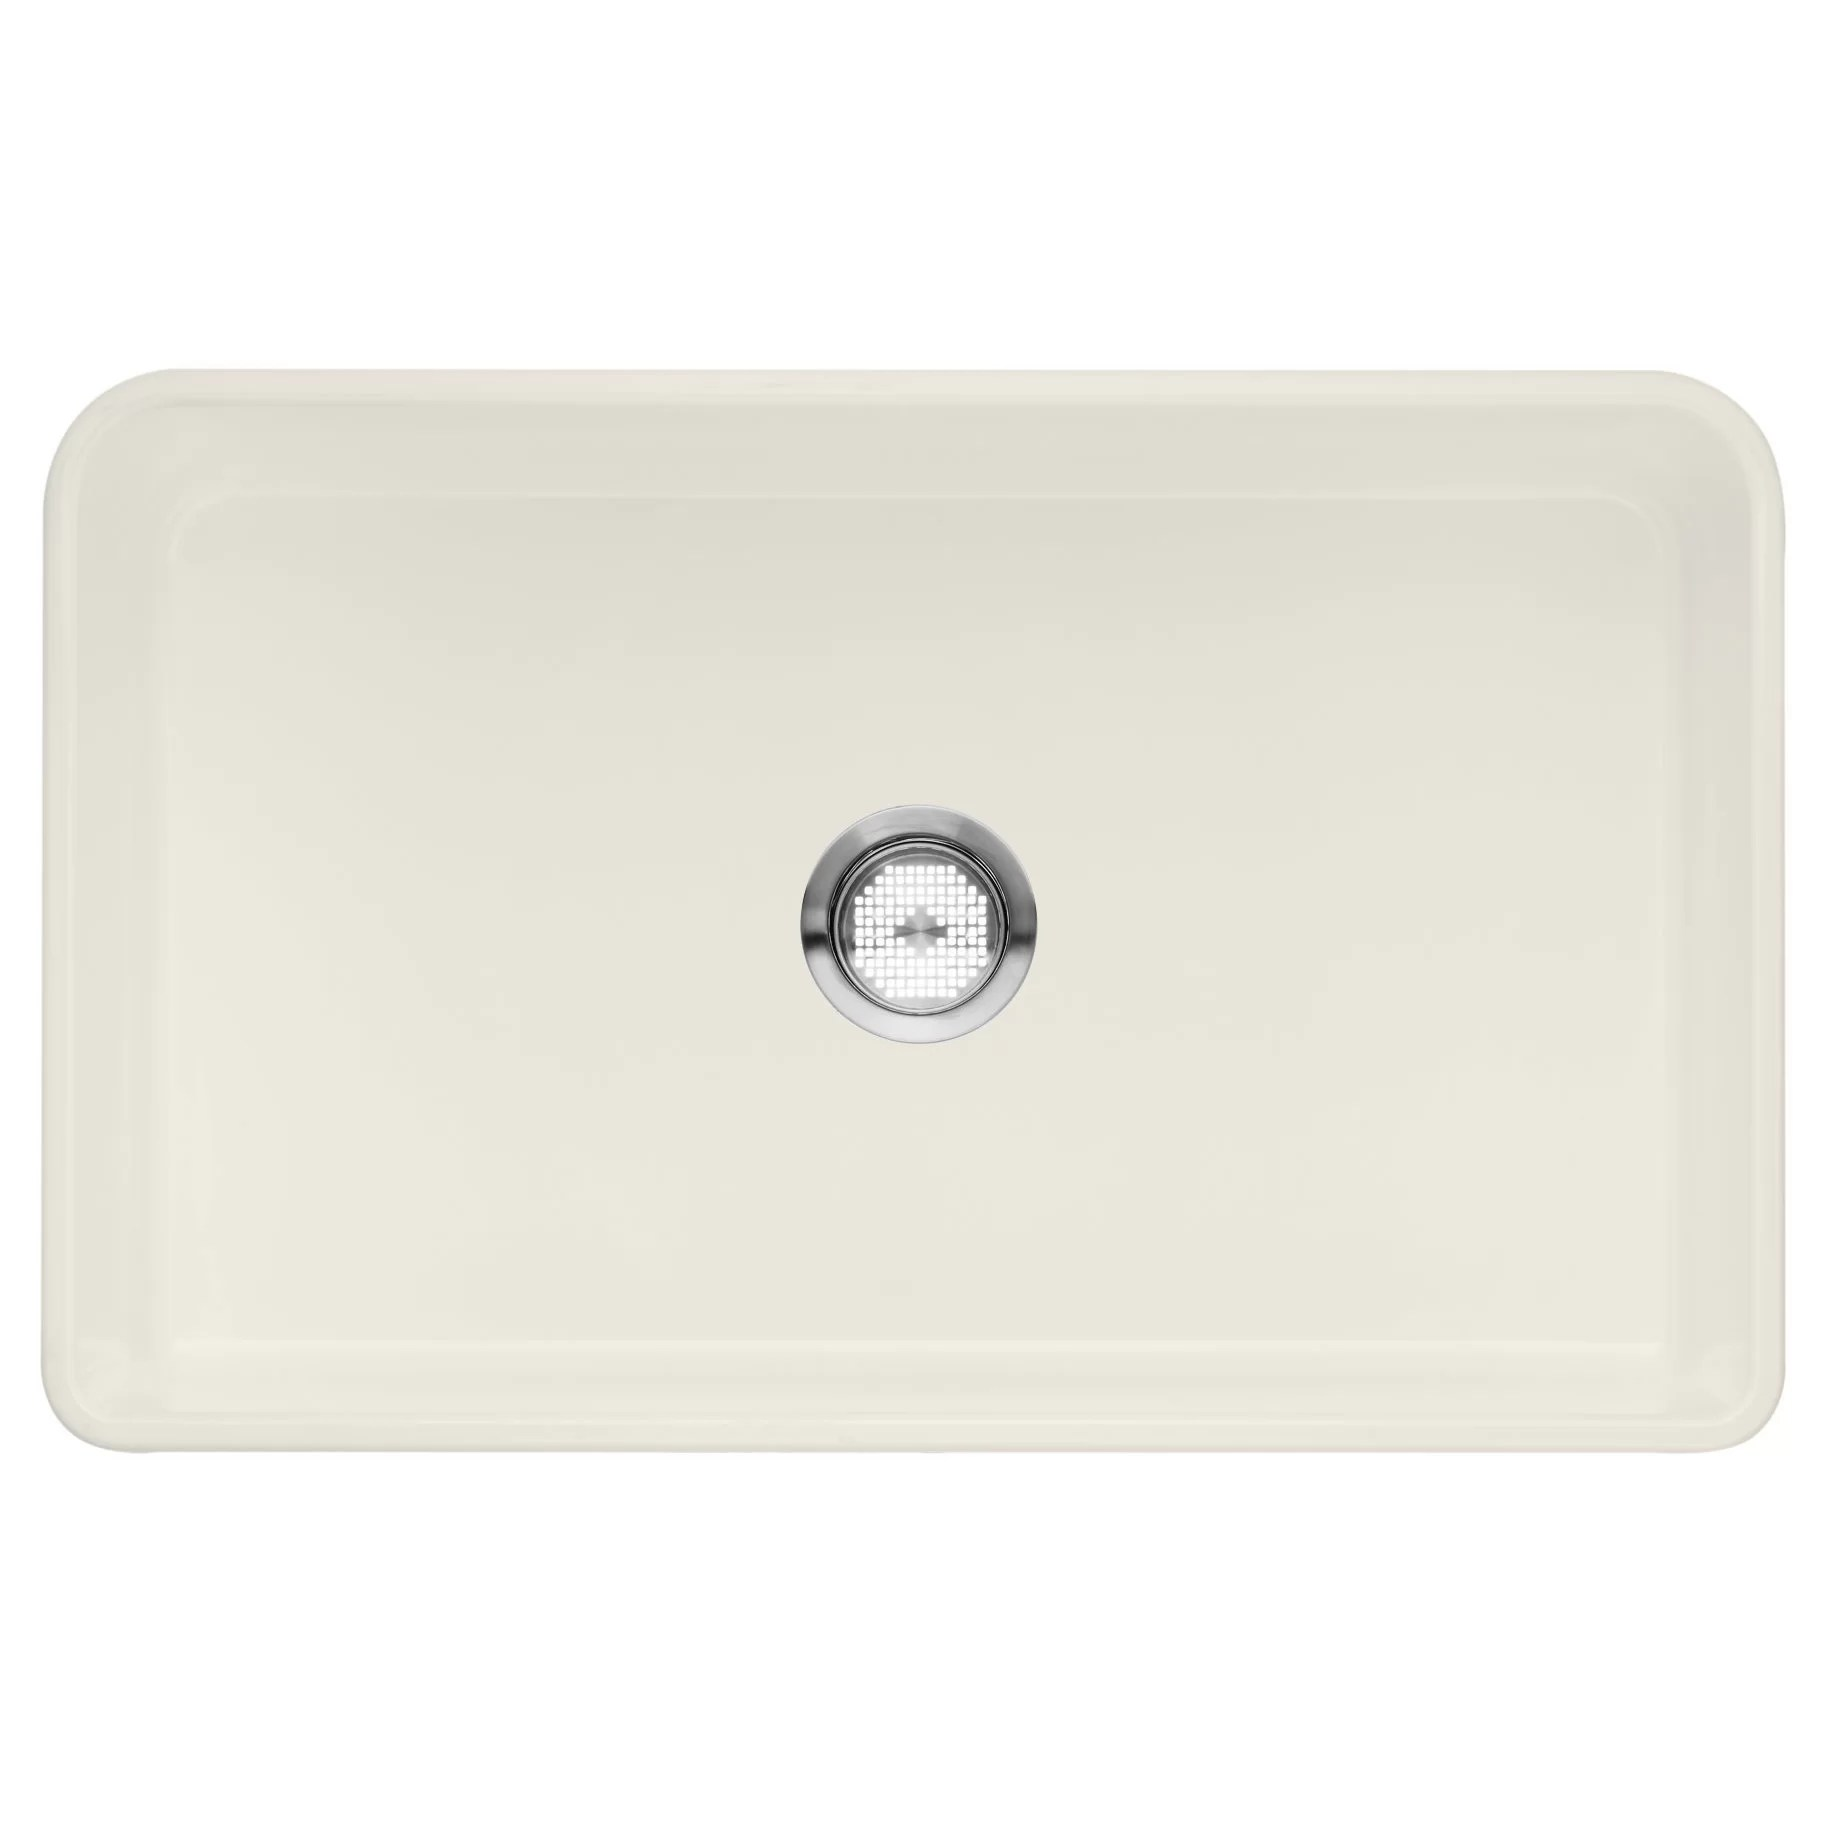 Blanco Farmhouse Sink Reviews Blanco Cerana 30 Quot X 19 Quot Single Basin Kitchen Sink